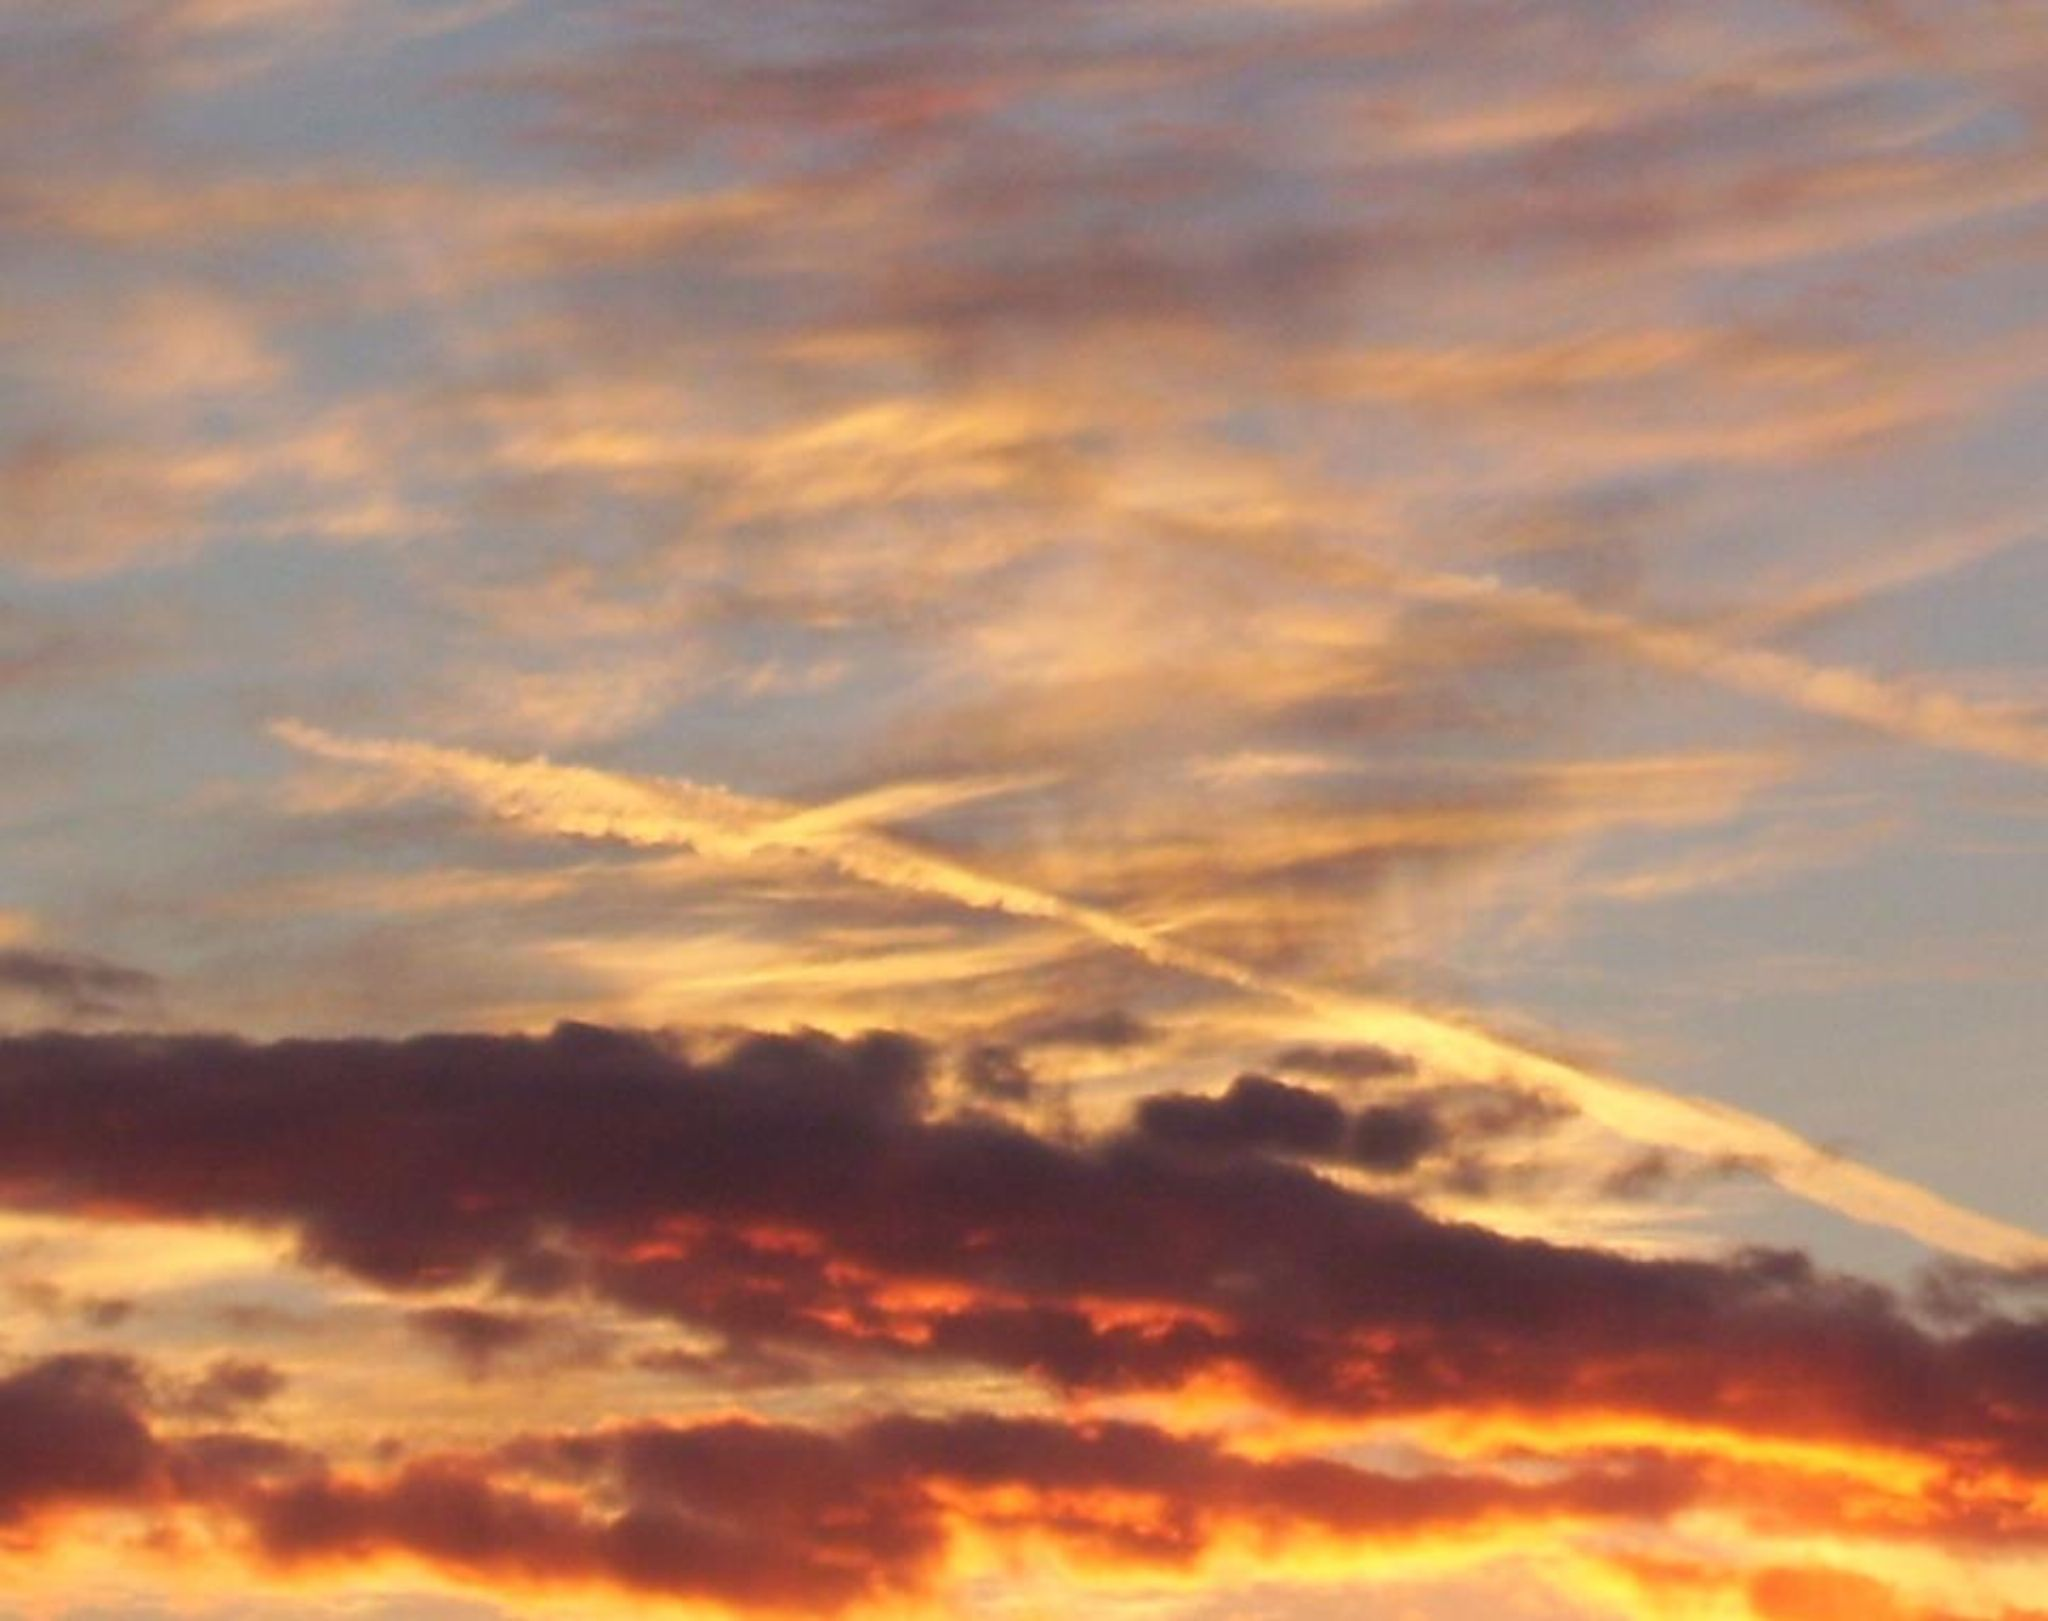 Crosses in sunset by sally.kaley